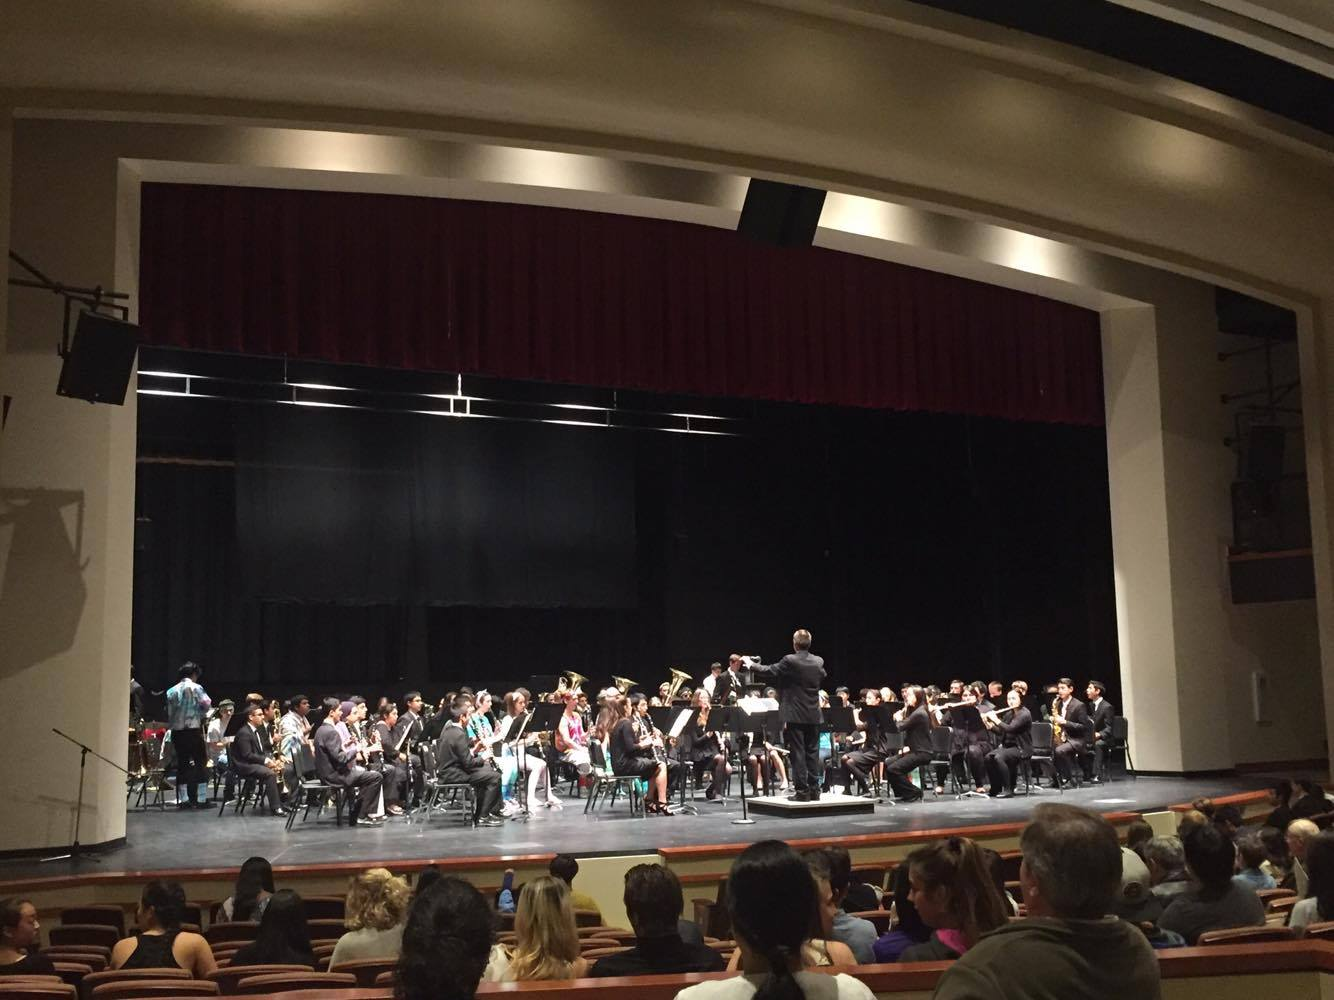 The Paly Symphonic Band, conducted by Jeff Willner, was the first to perform in the new PAC on Thursday May 12. Photo: Emma van der Even.